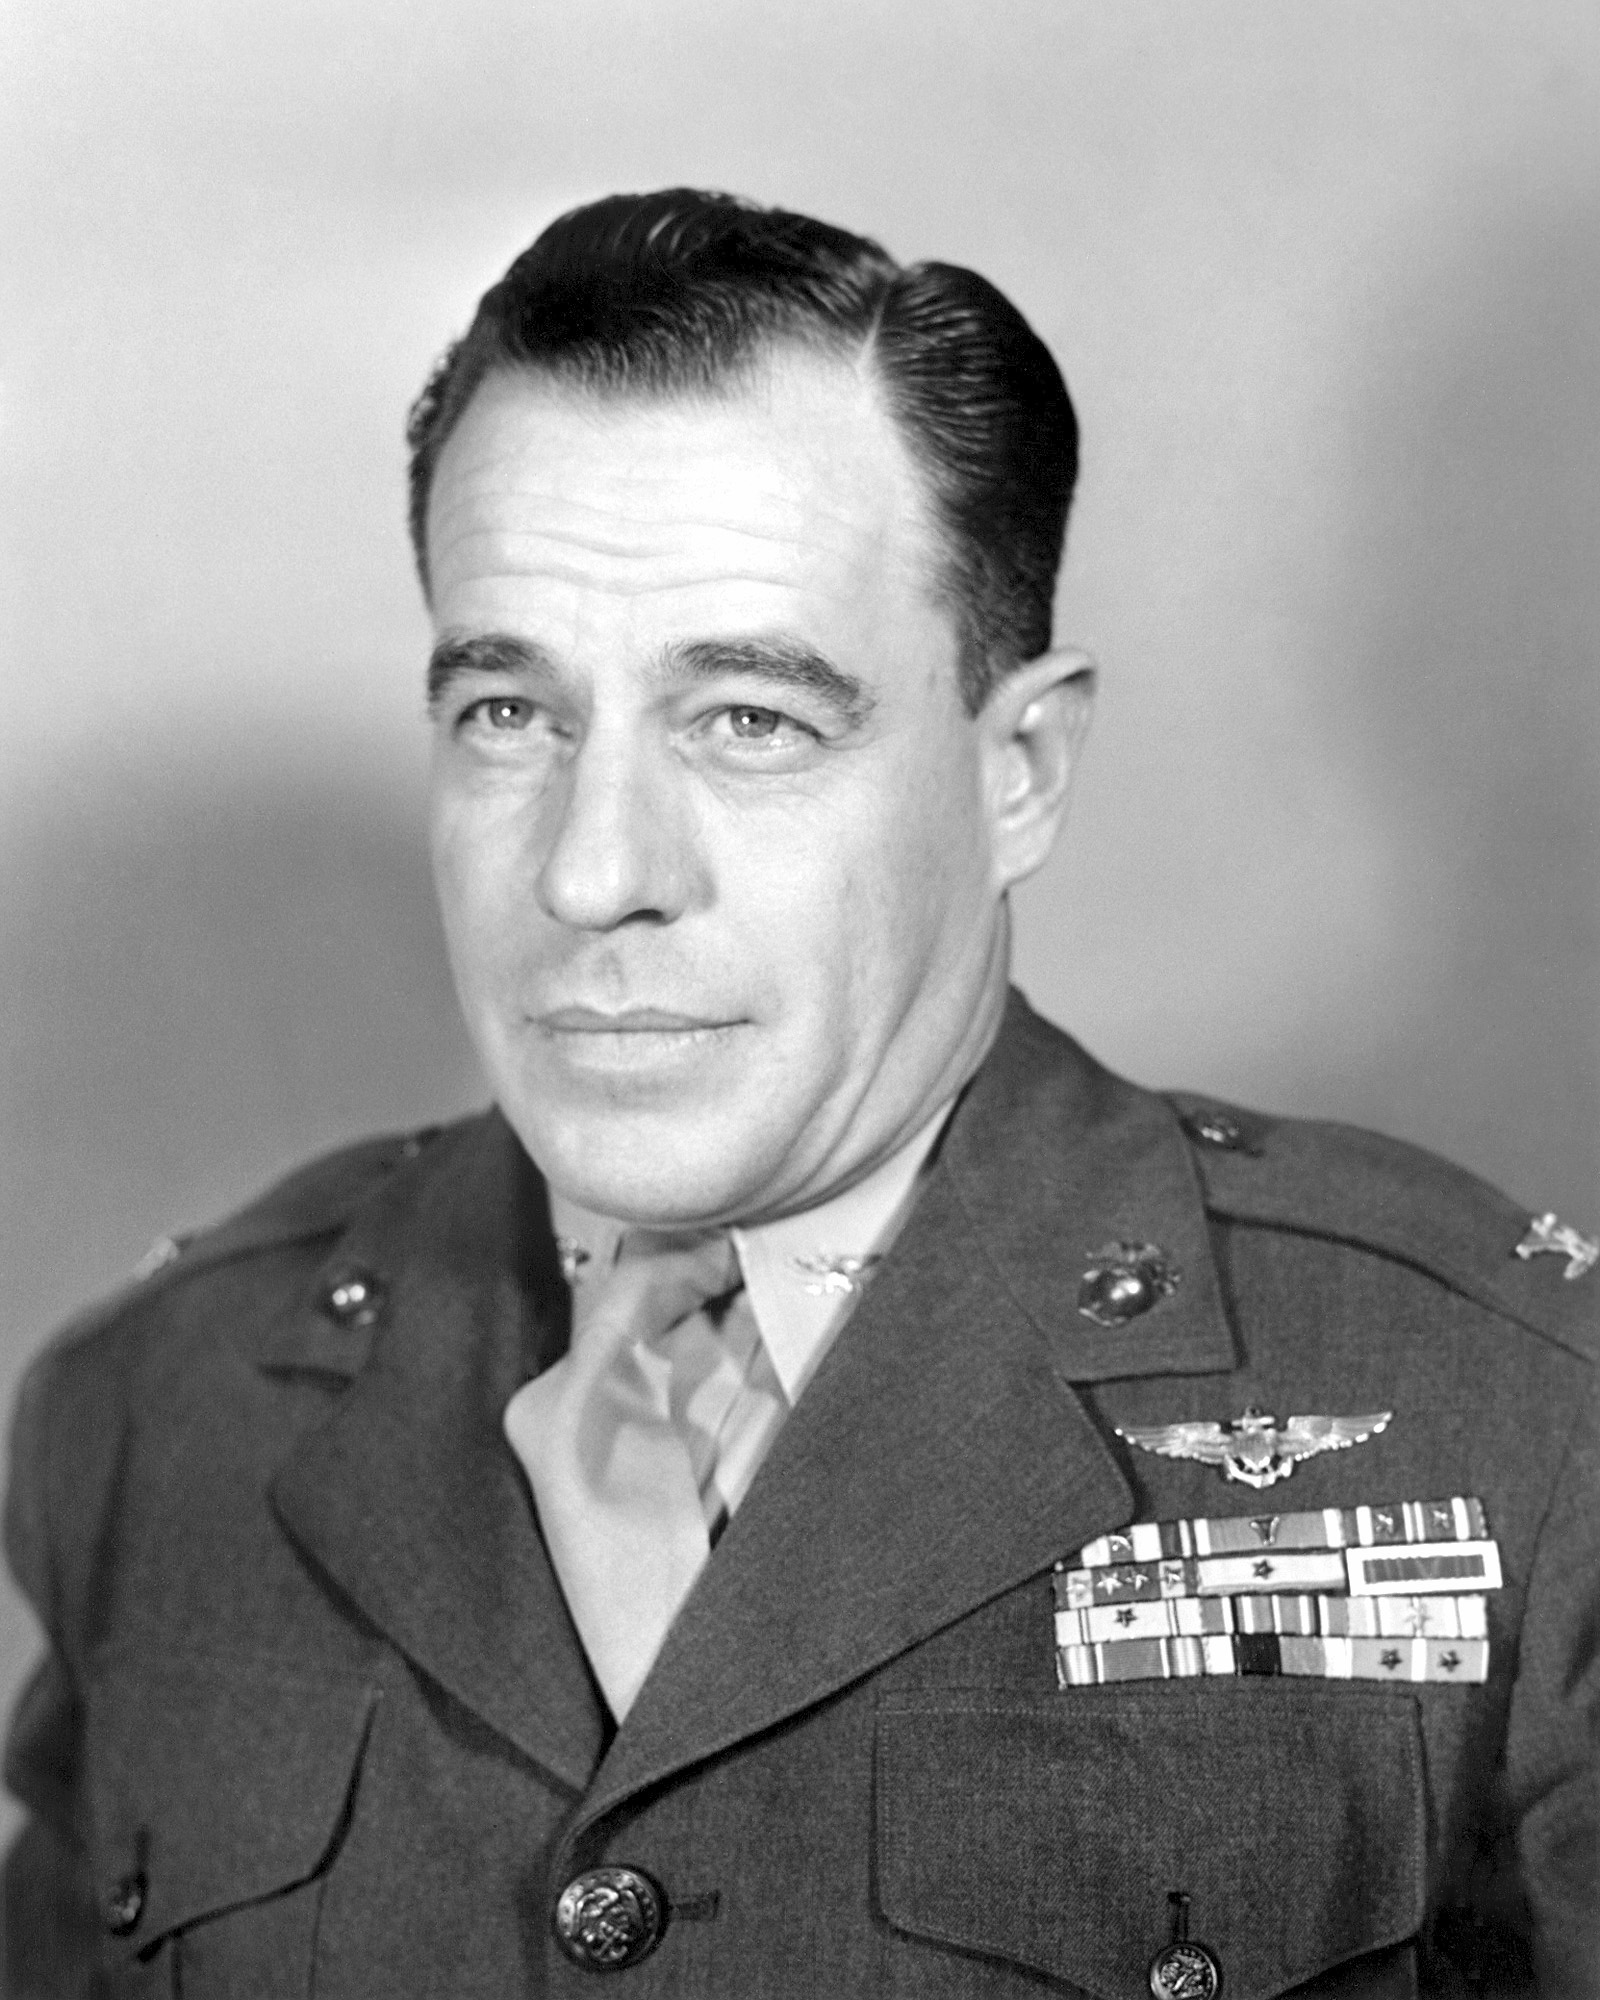 United States Marine Corps Colonel (COL) Donald K. Yost. Official Portrait